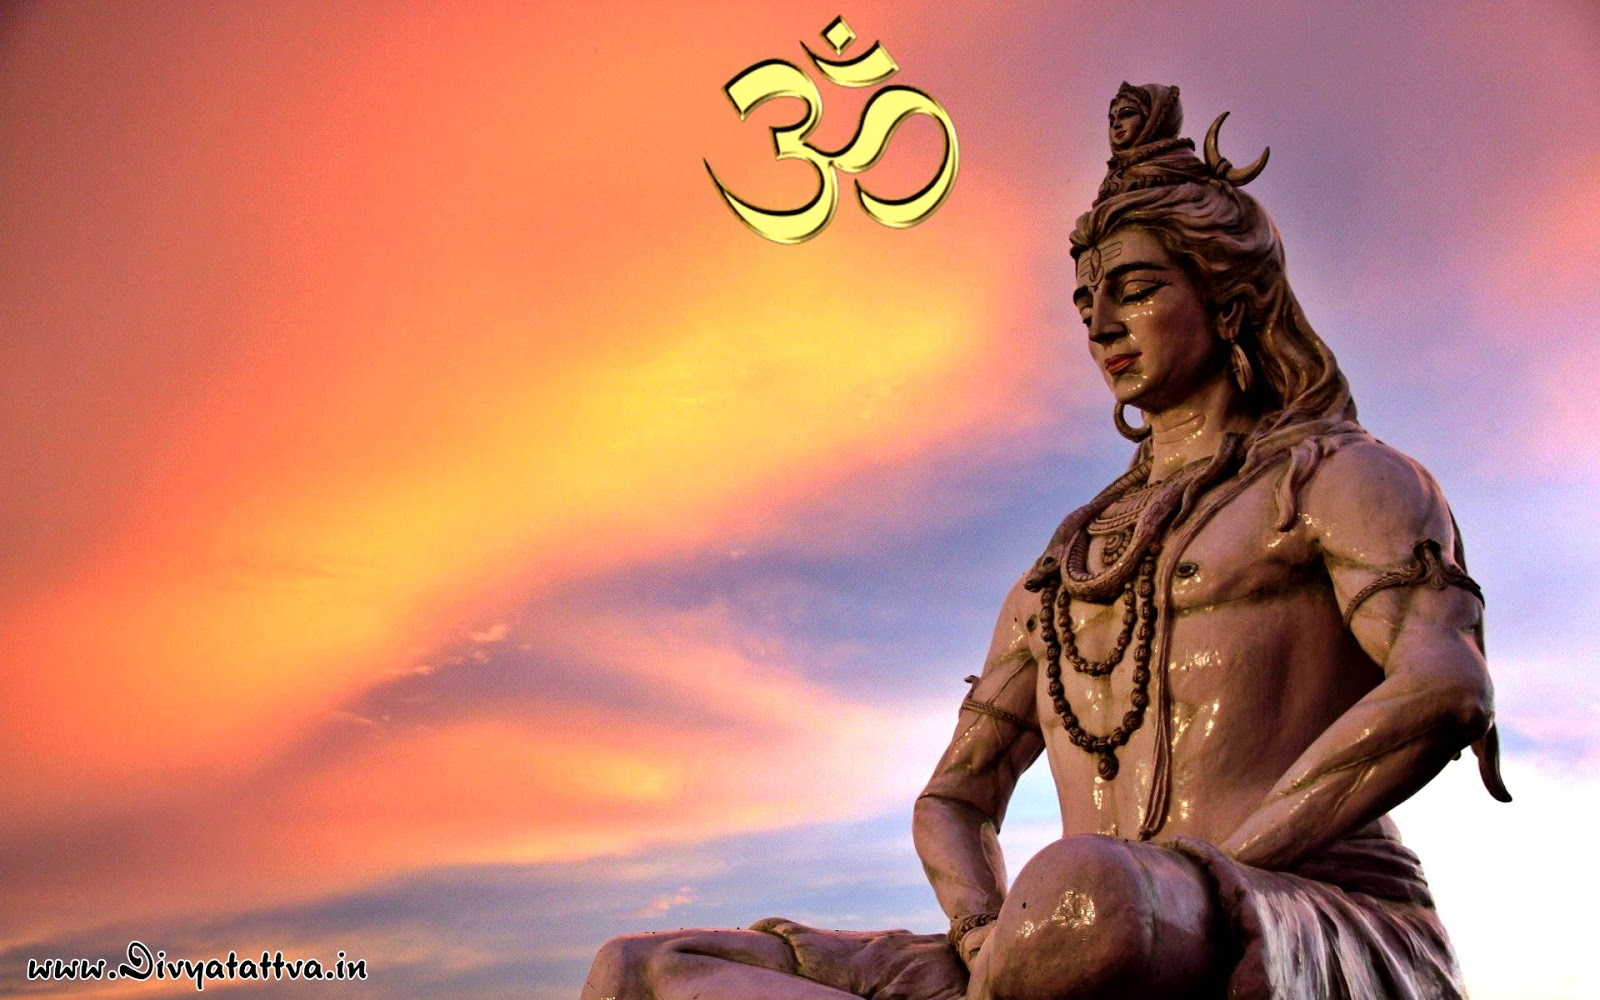 Lord Shiva Wallpapers 3d: Divyatattva Astrology Free Horoscopes Psychic Tarot Yoga